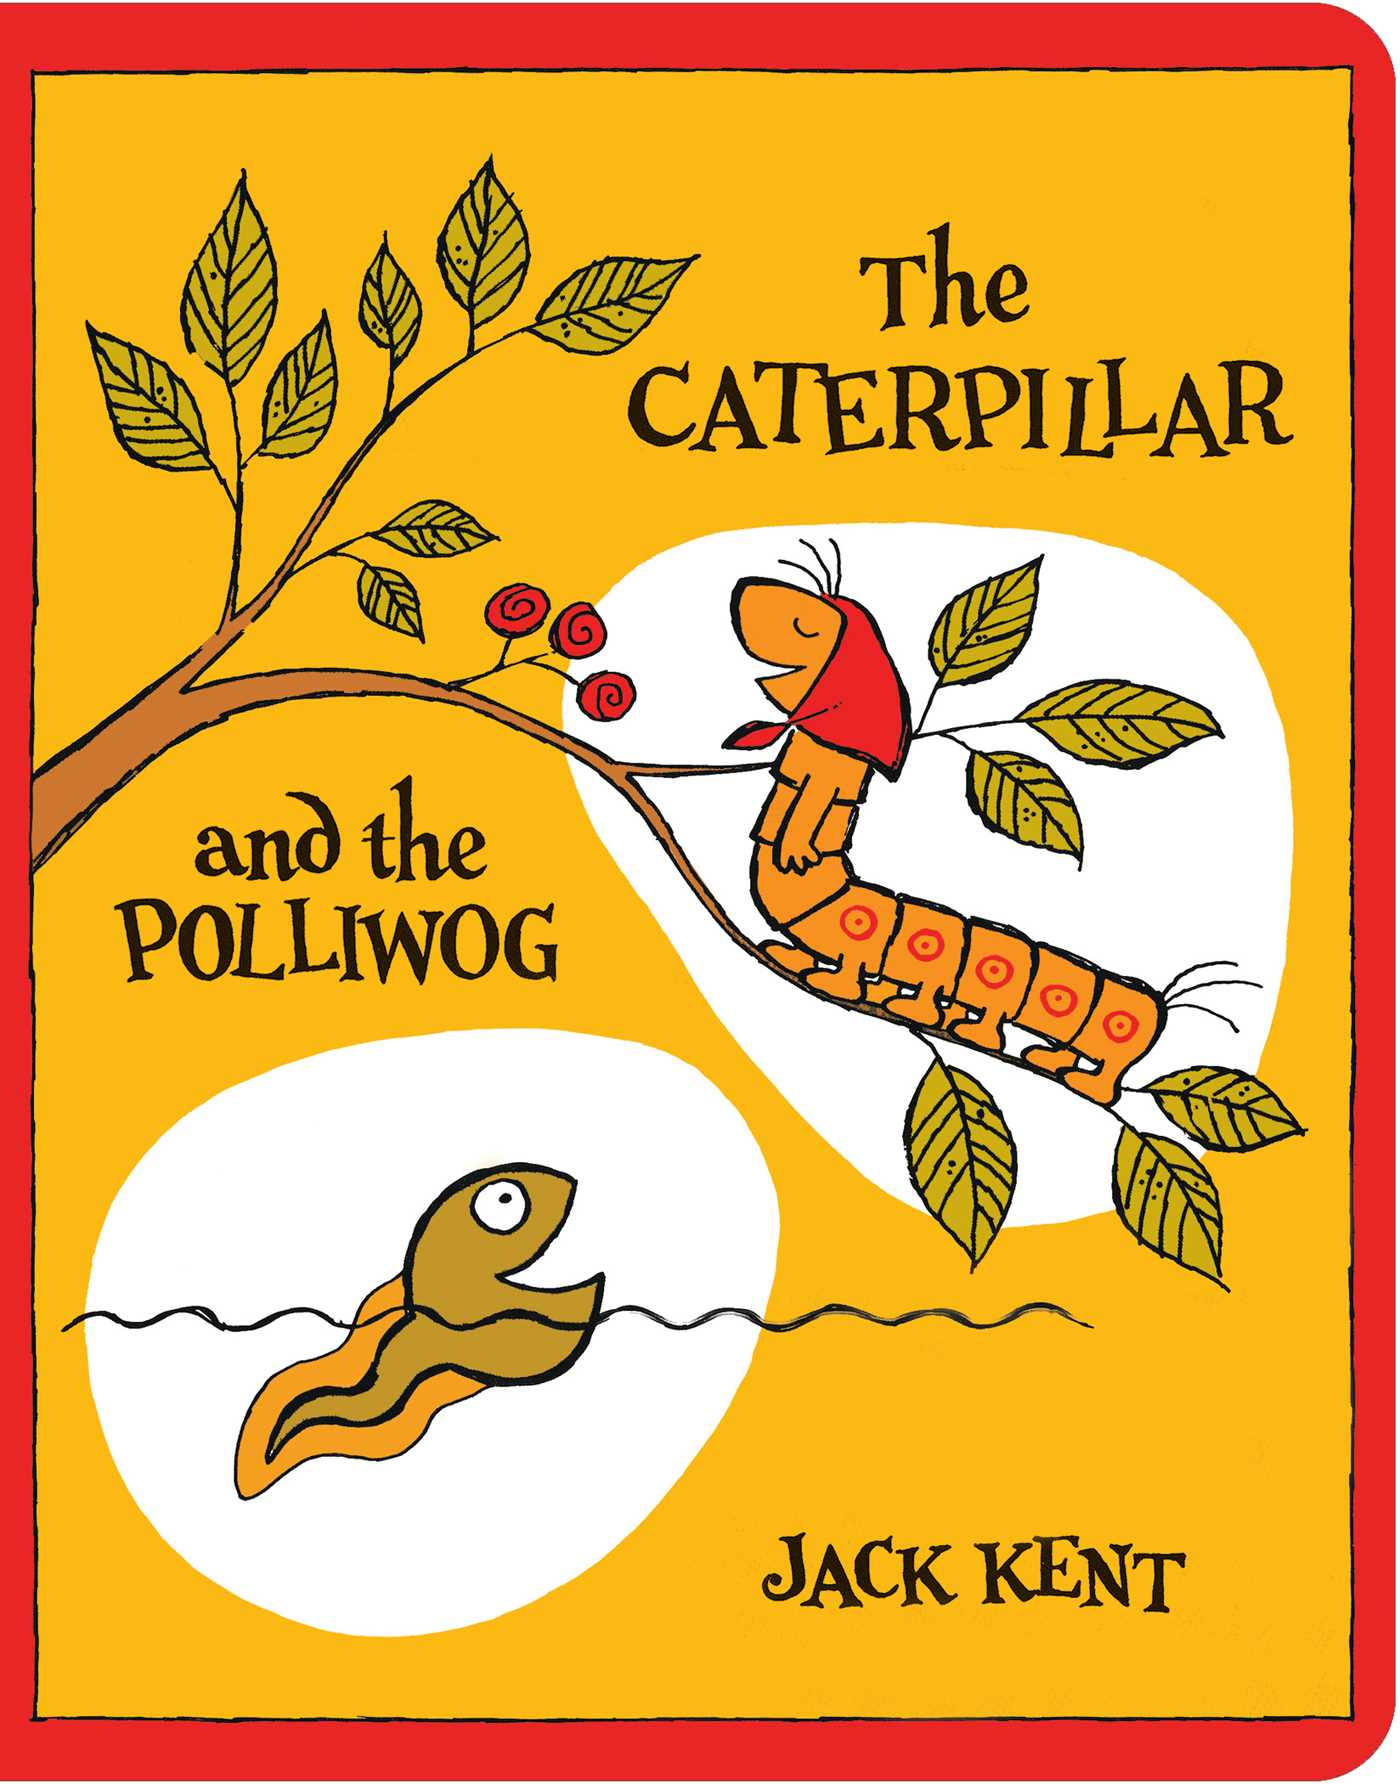 The caterpillar and the polliwog 9781534413771 hr